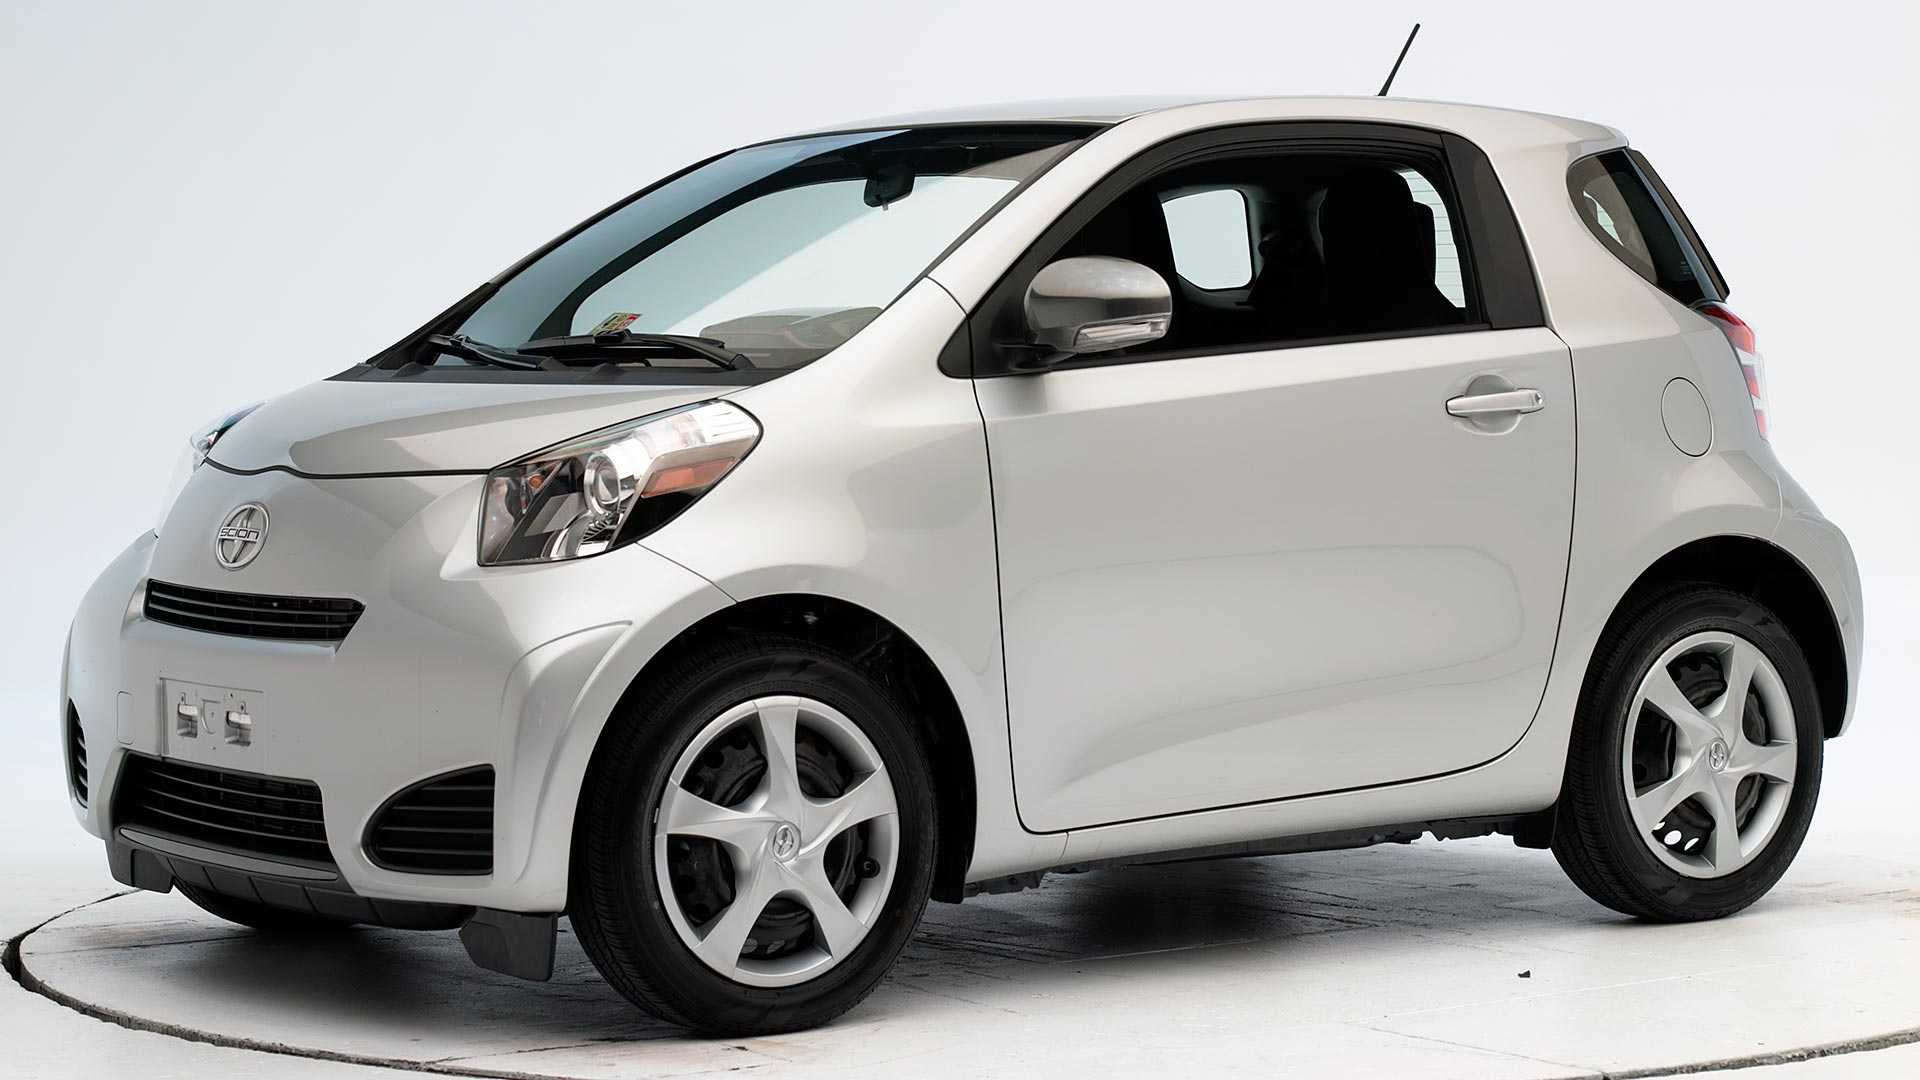 2014 Scion iQ 2-door hatchback